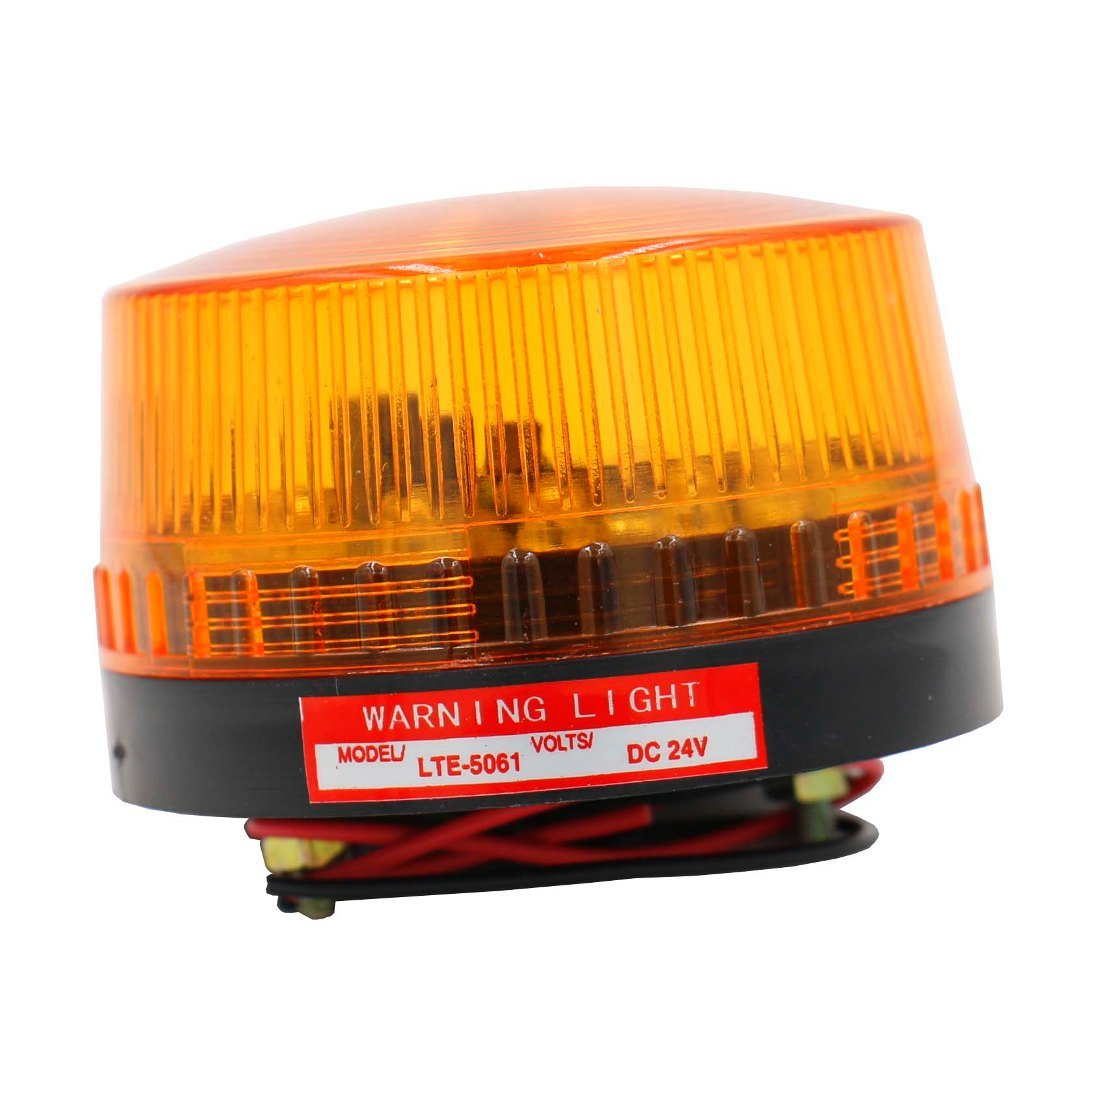 Baomain Industrial Signal Round Yellow Warning light strobe warning lamp LTE-5061 DC 24V 3W